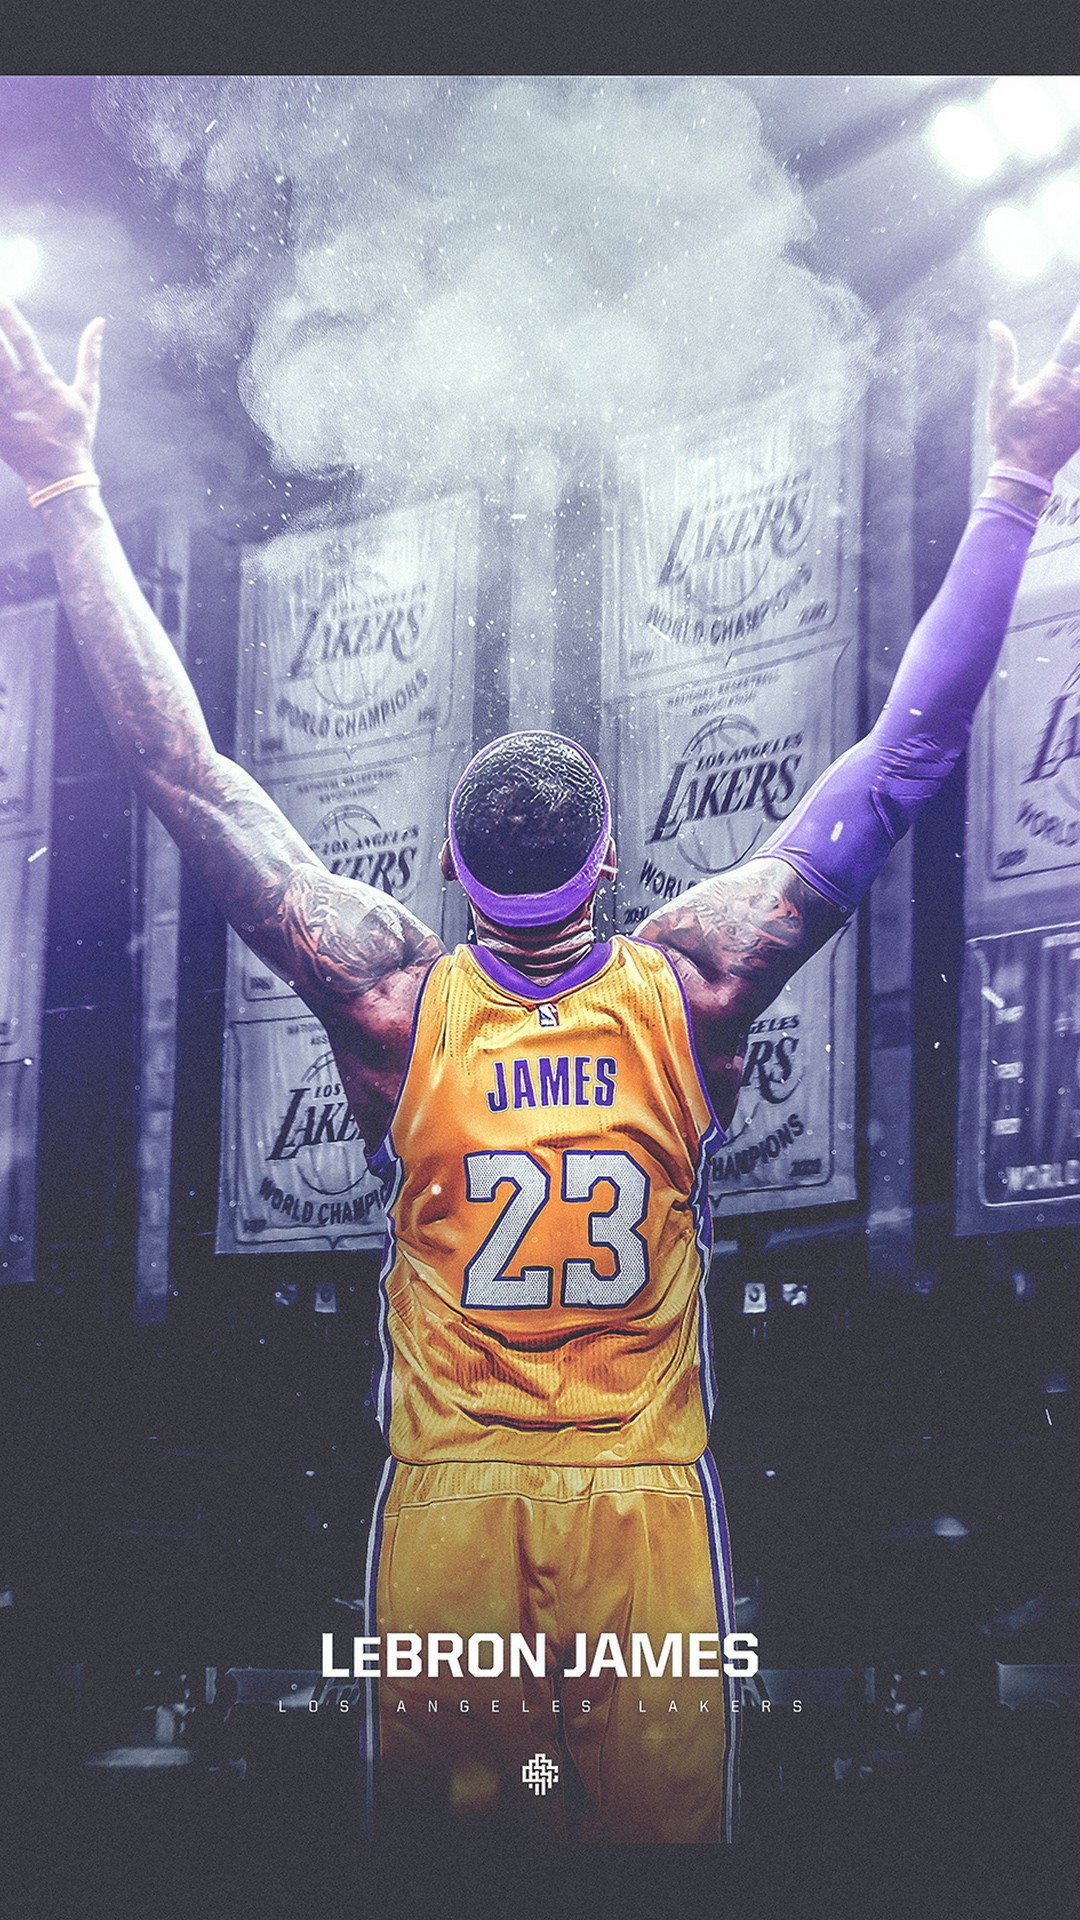 LeBron James LA Lakers HD Wallpaper For iPhone 2020 Basketball 1080x1920